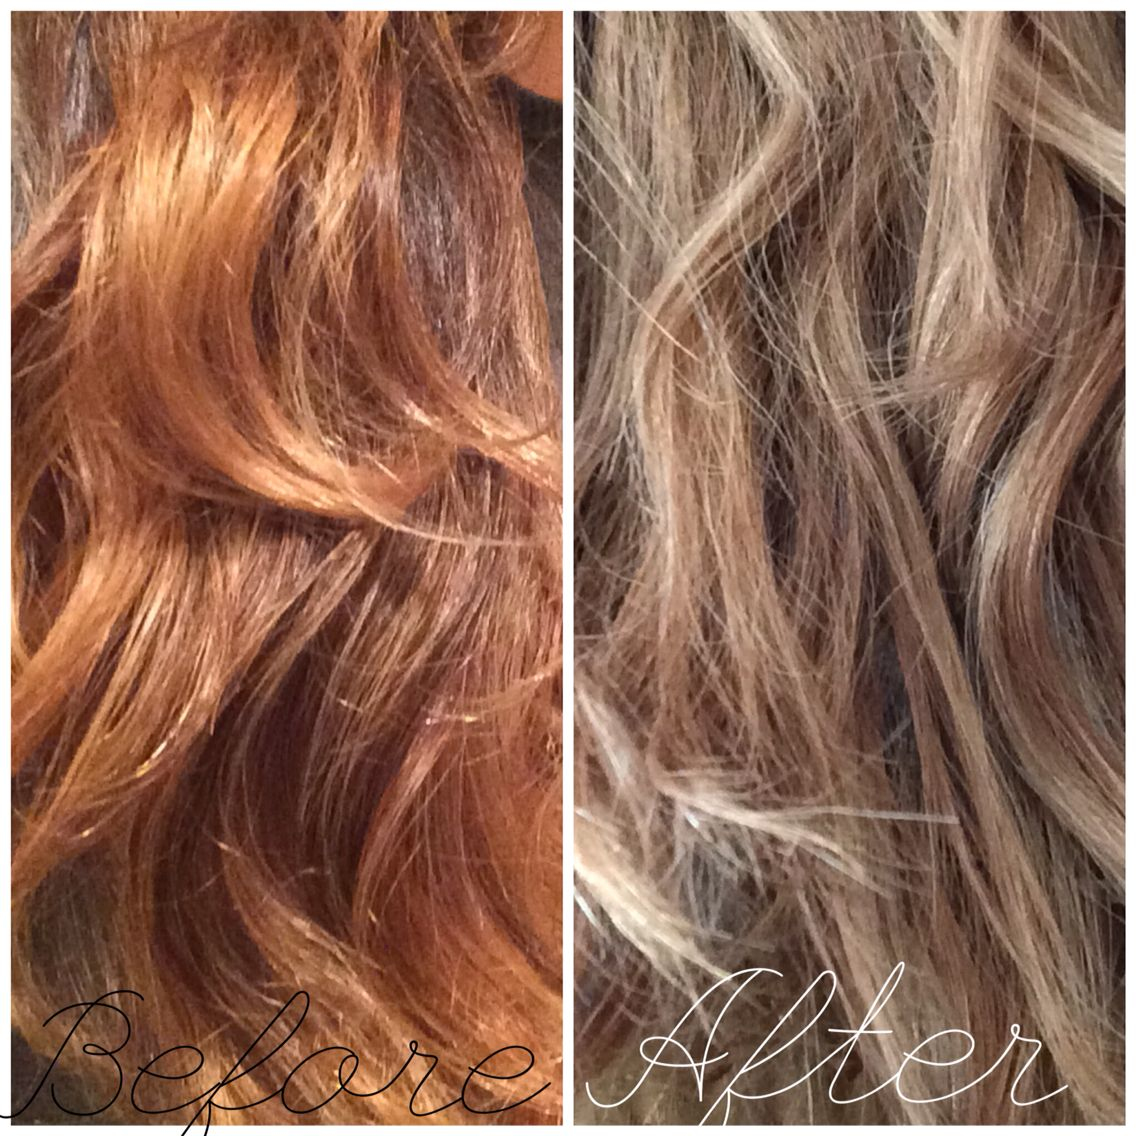 I Diy Toned My Hair With Wella T18 20 Volume Developer To Freshen Up Ombré